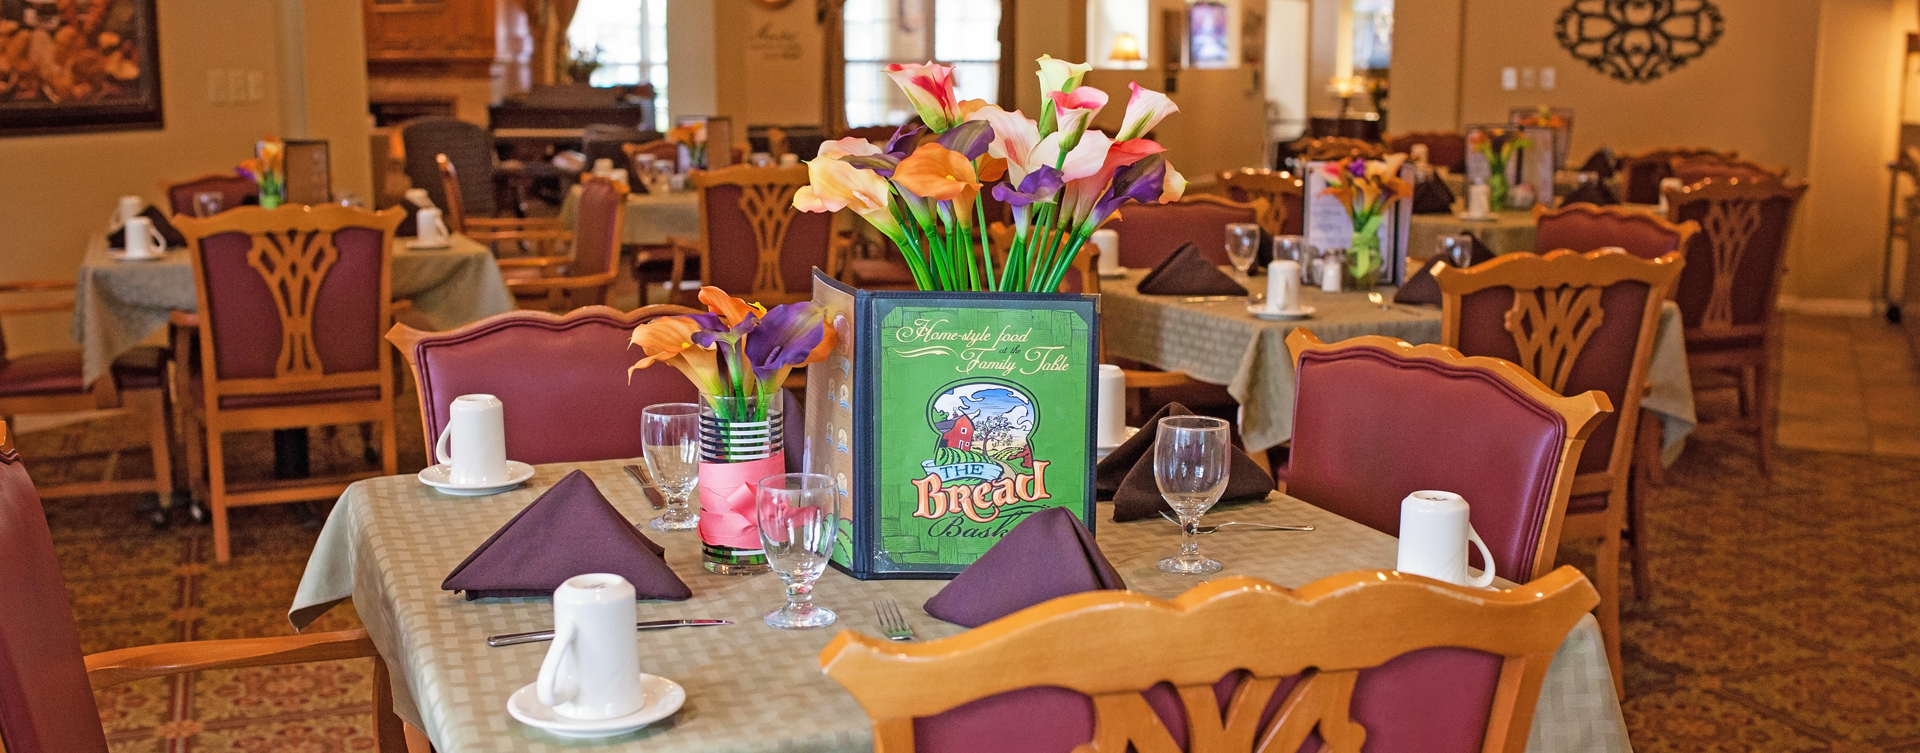 Enjoy homestyle food with made-from-scratch recipes in our dining room at Bickford of Cedar Falls